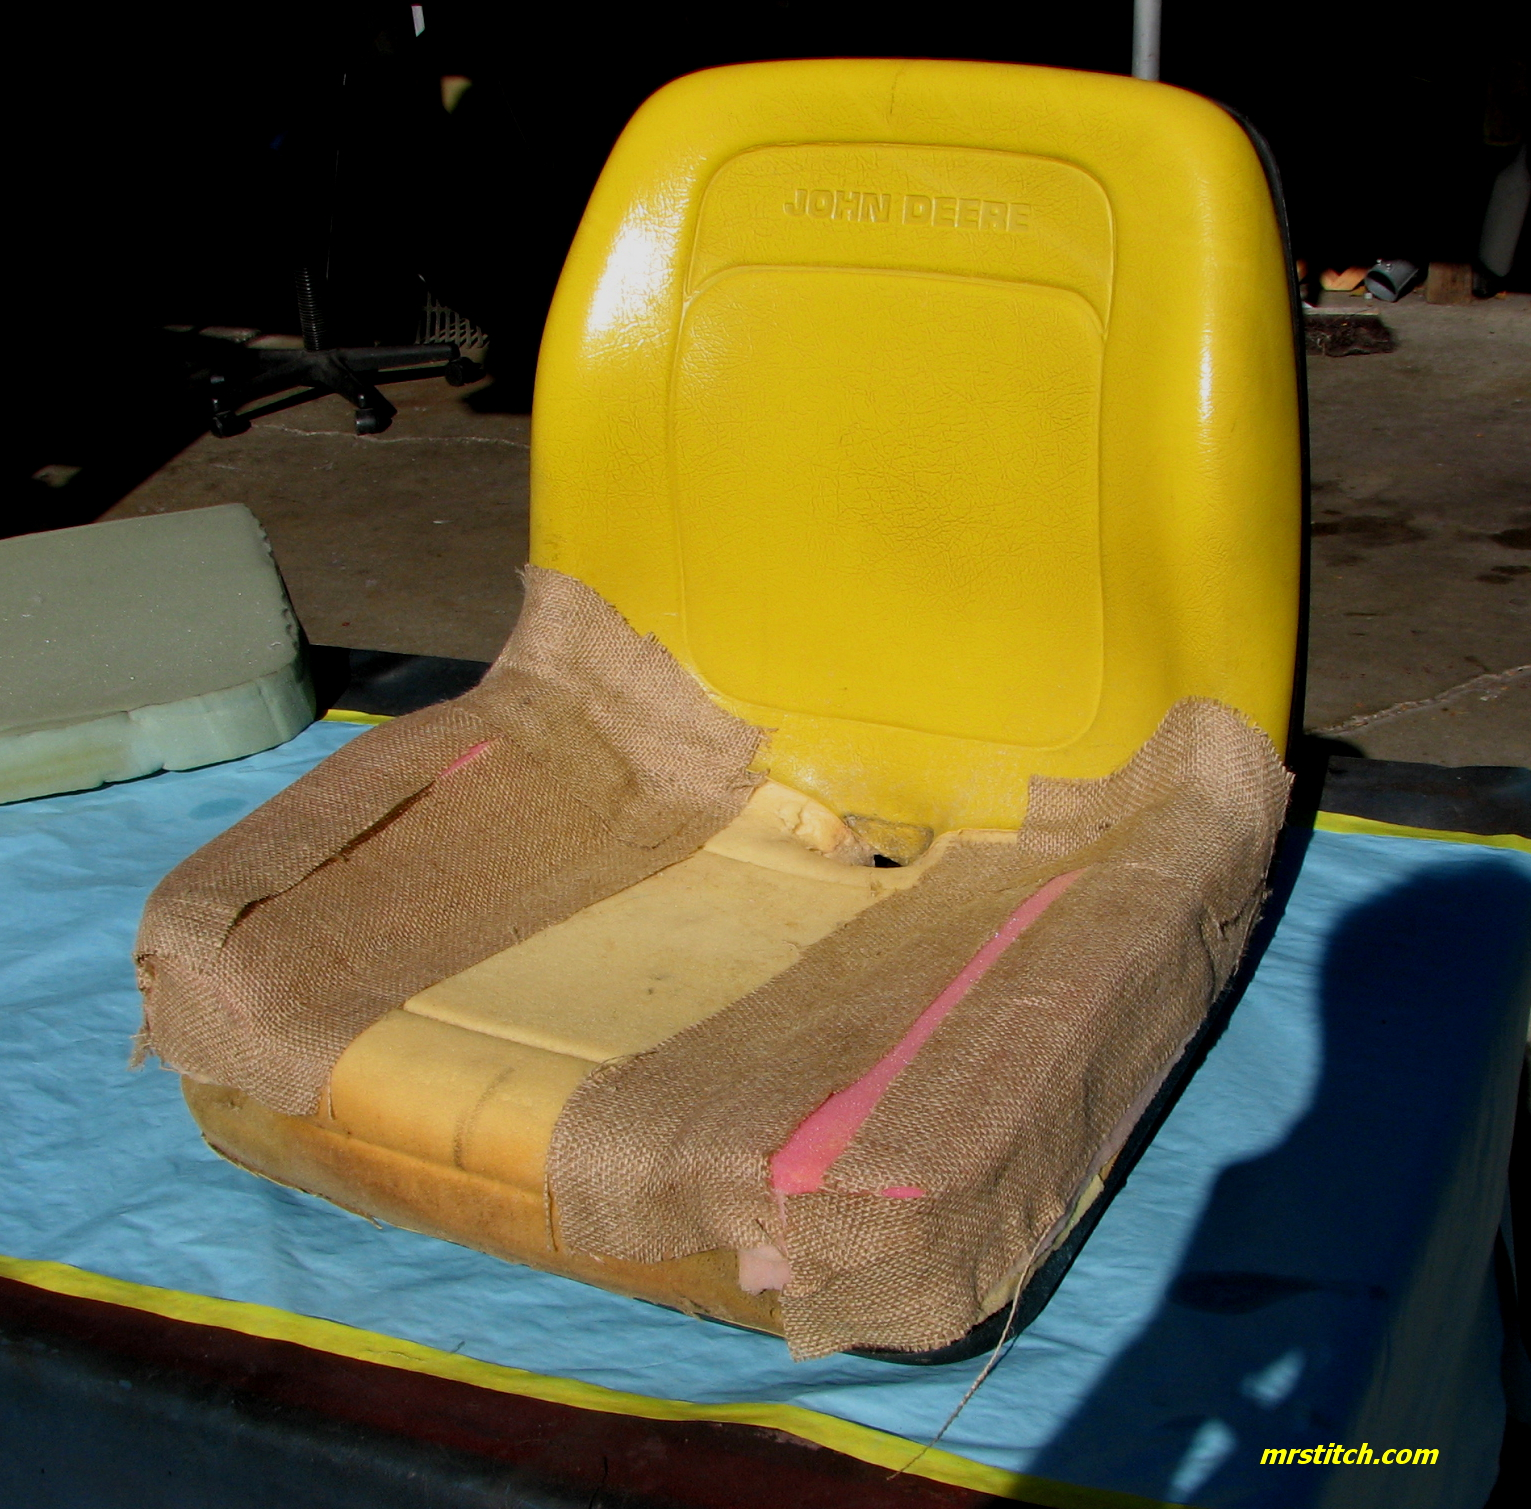 John Deere Seat Covers For Trucks : Truck seats